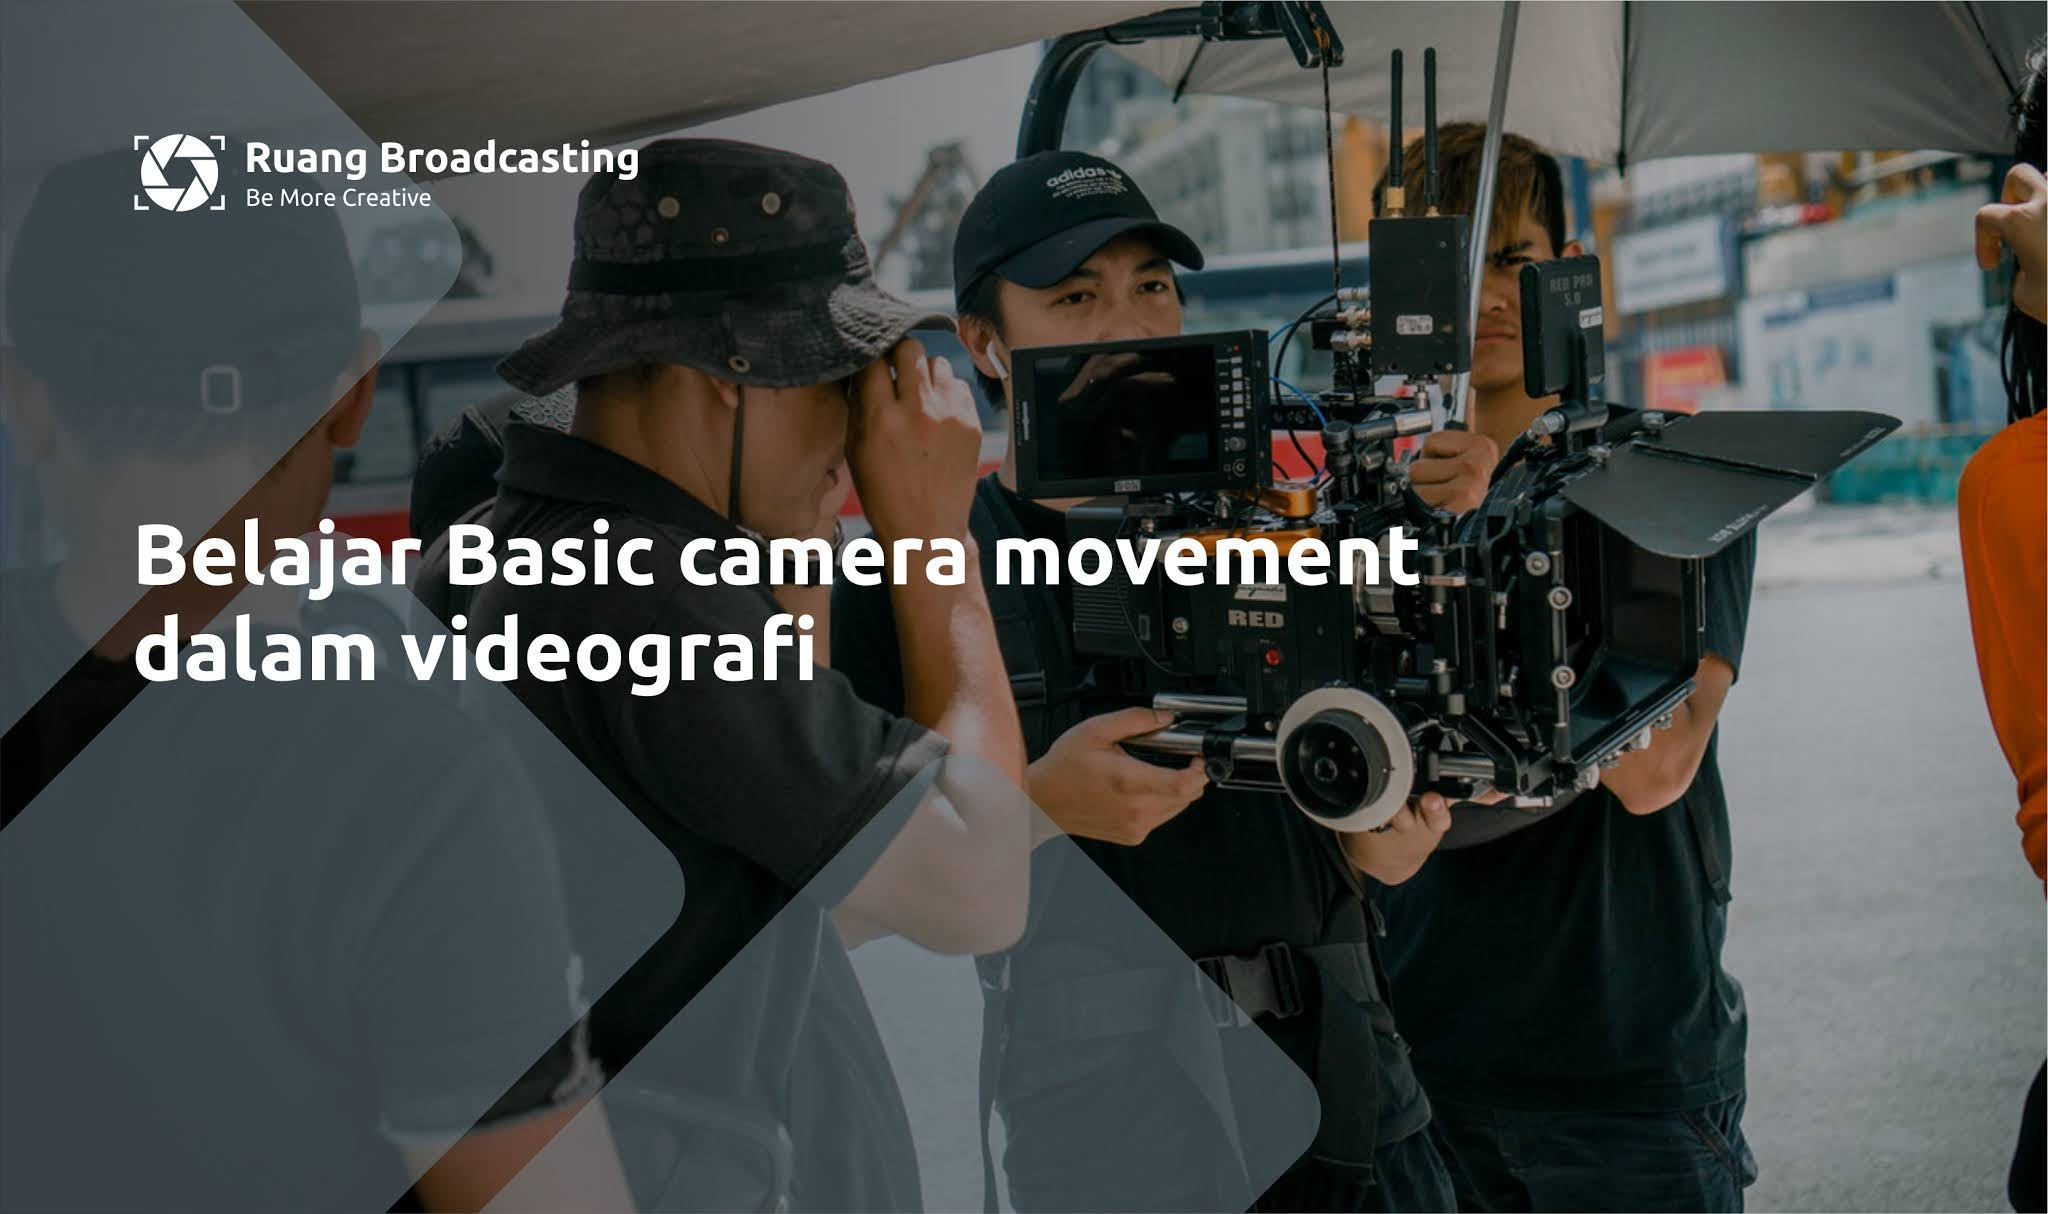 Camera movement dalam videografi